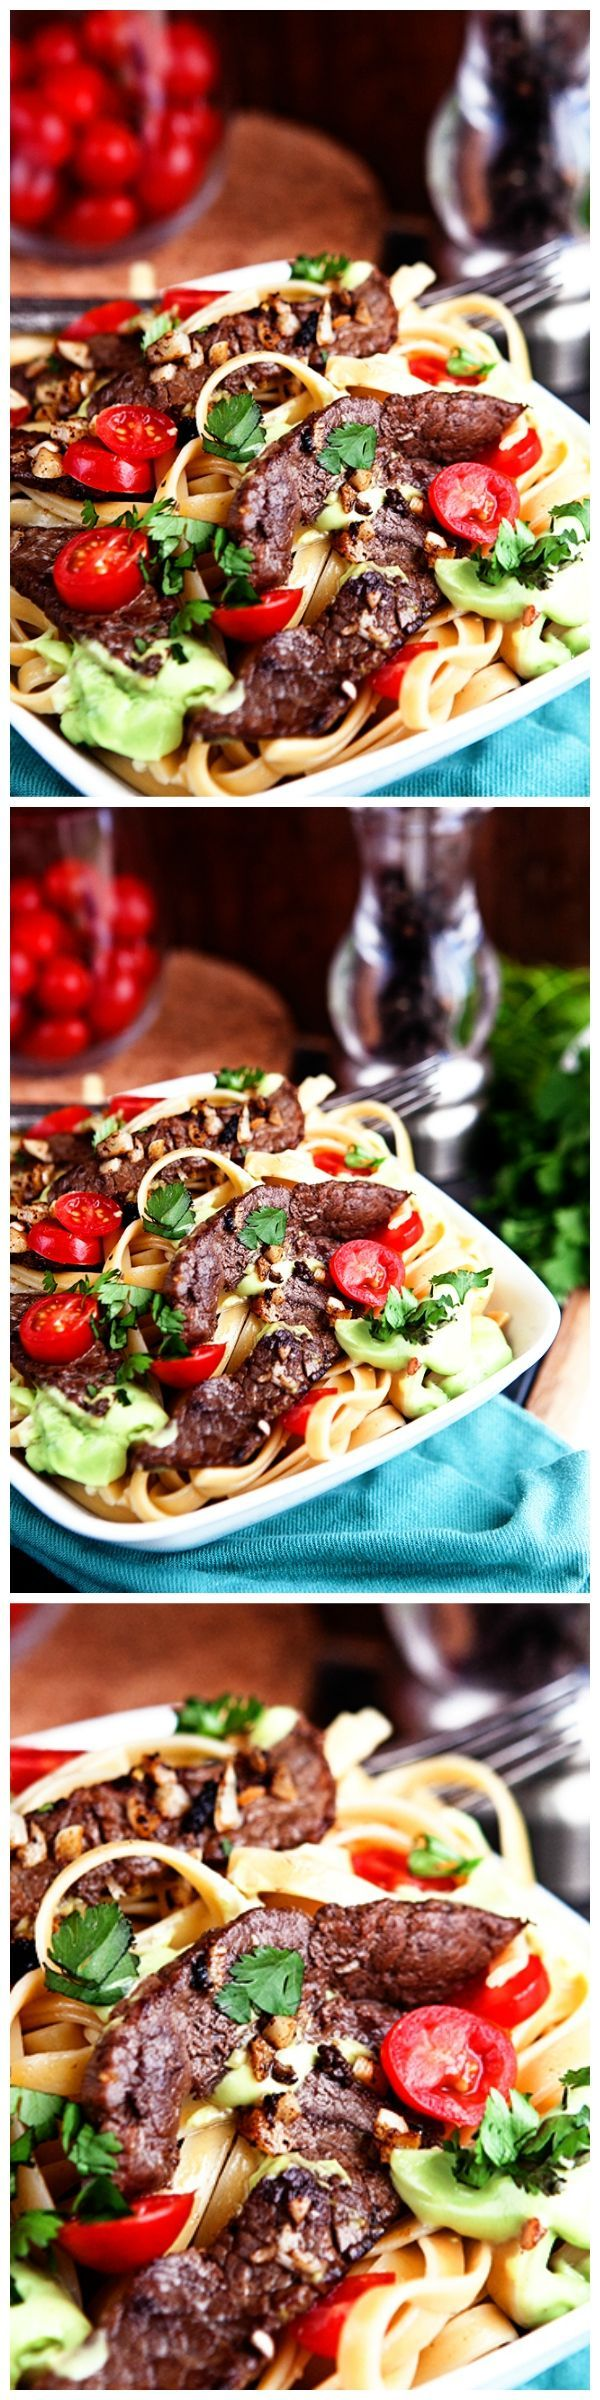 parkas for men This delicious pasta is a simple, quick, clean eating dinner. The sauce is crazy good! | Current |  | Clean Eating, Pasta and Cleanses